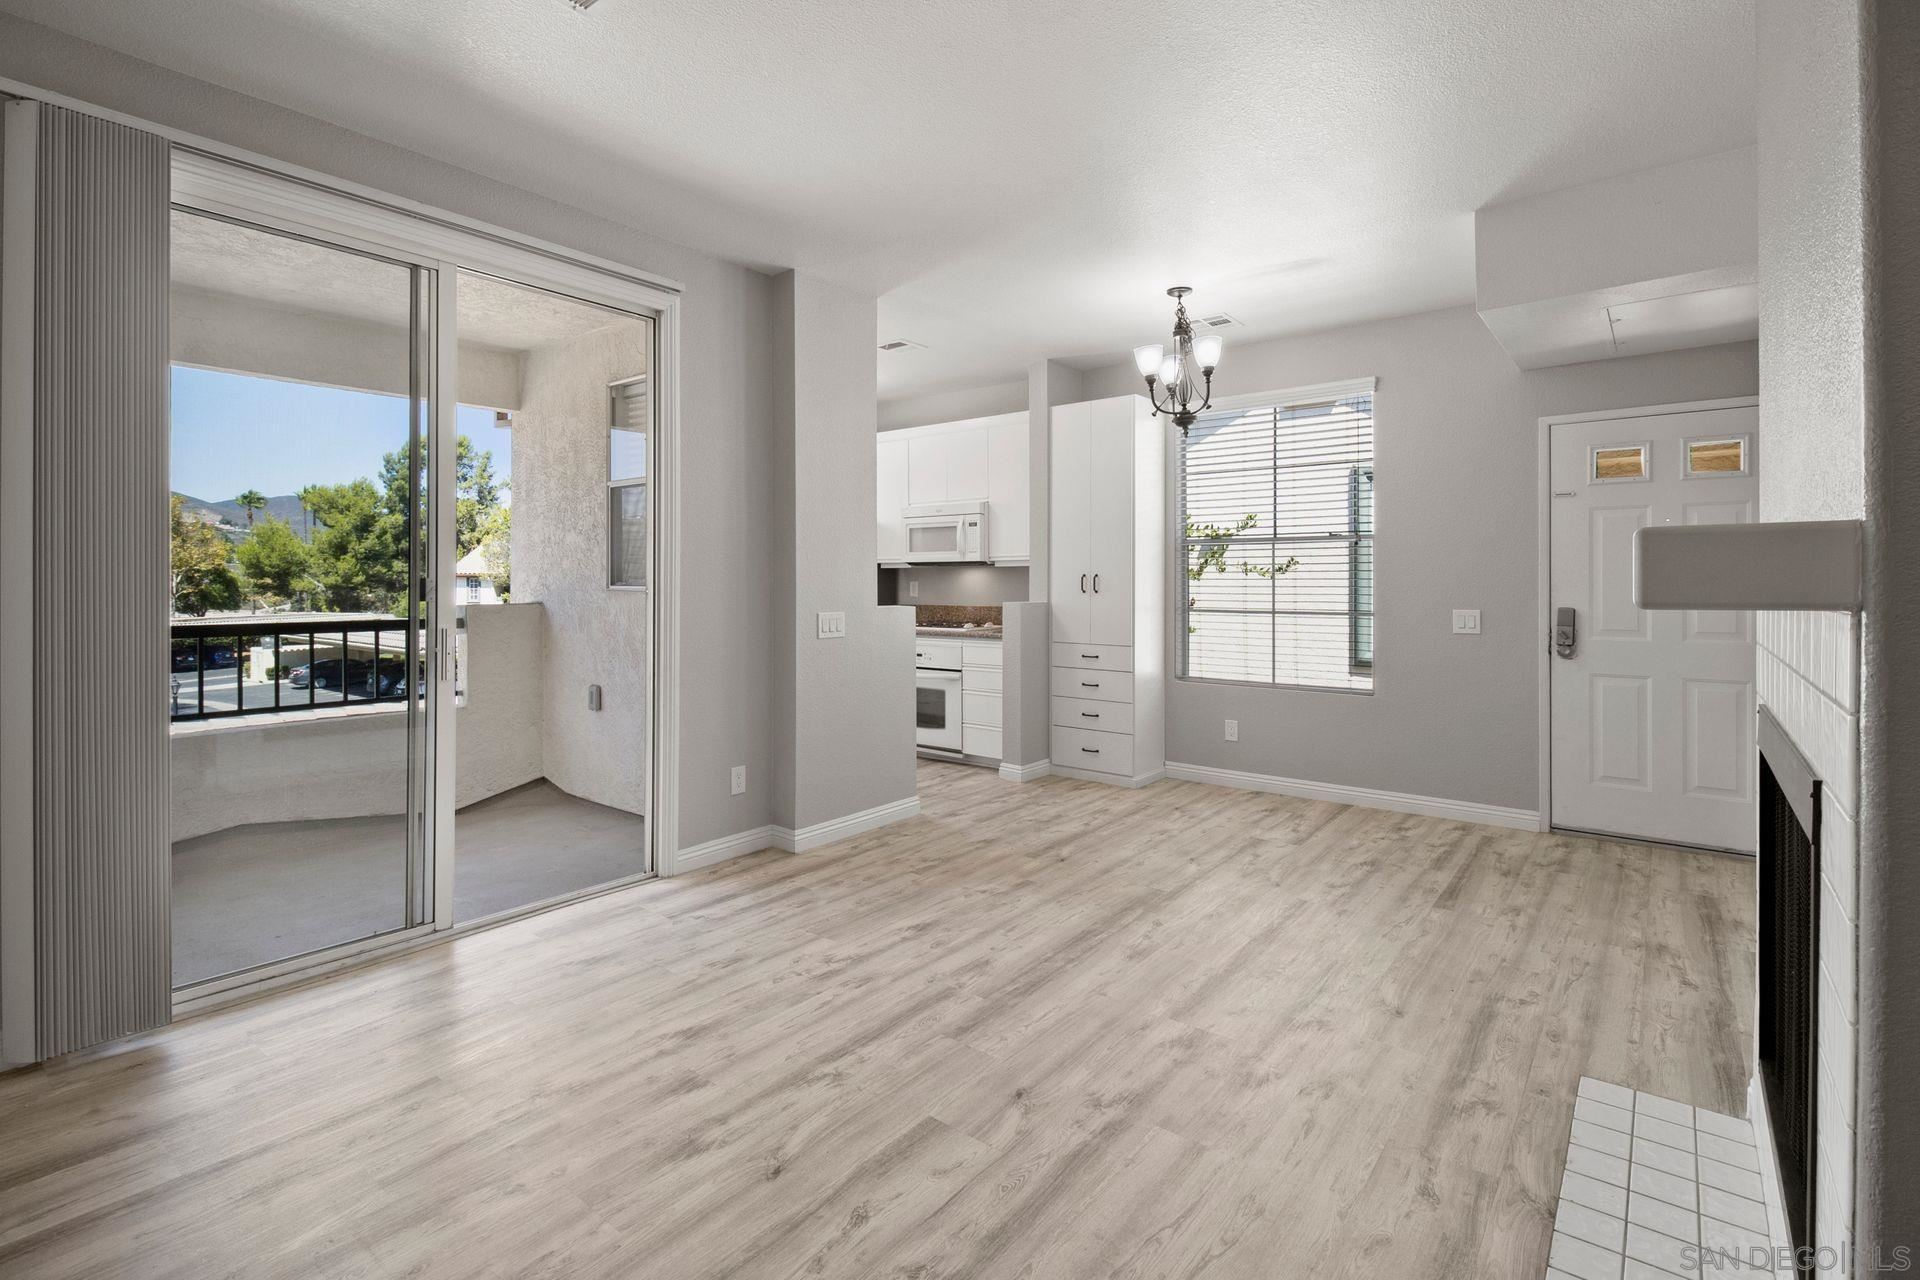 Photo of 10850 Sabre Hill Dr #236, San Diego, CA 92128 (MLS # 210026592)